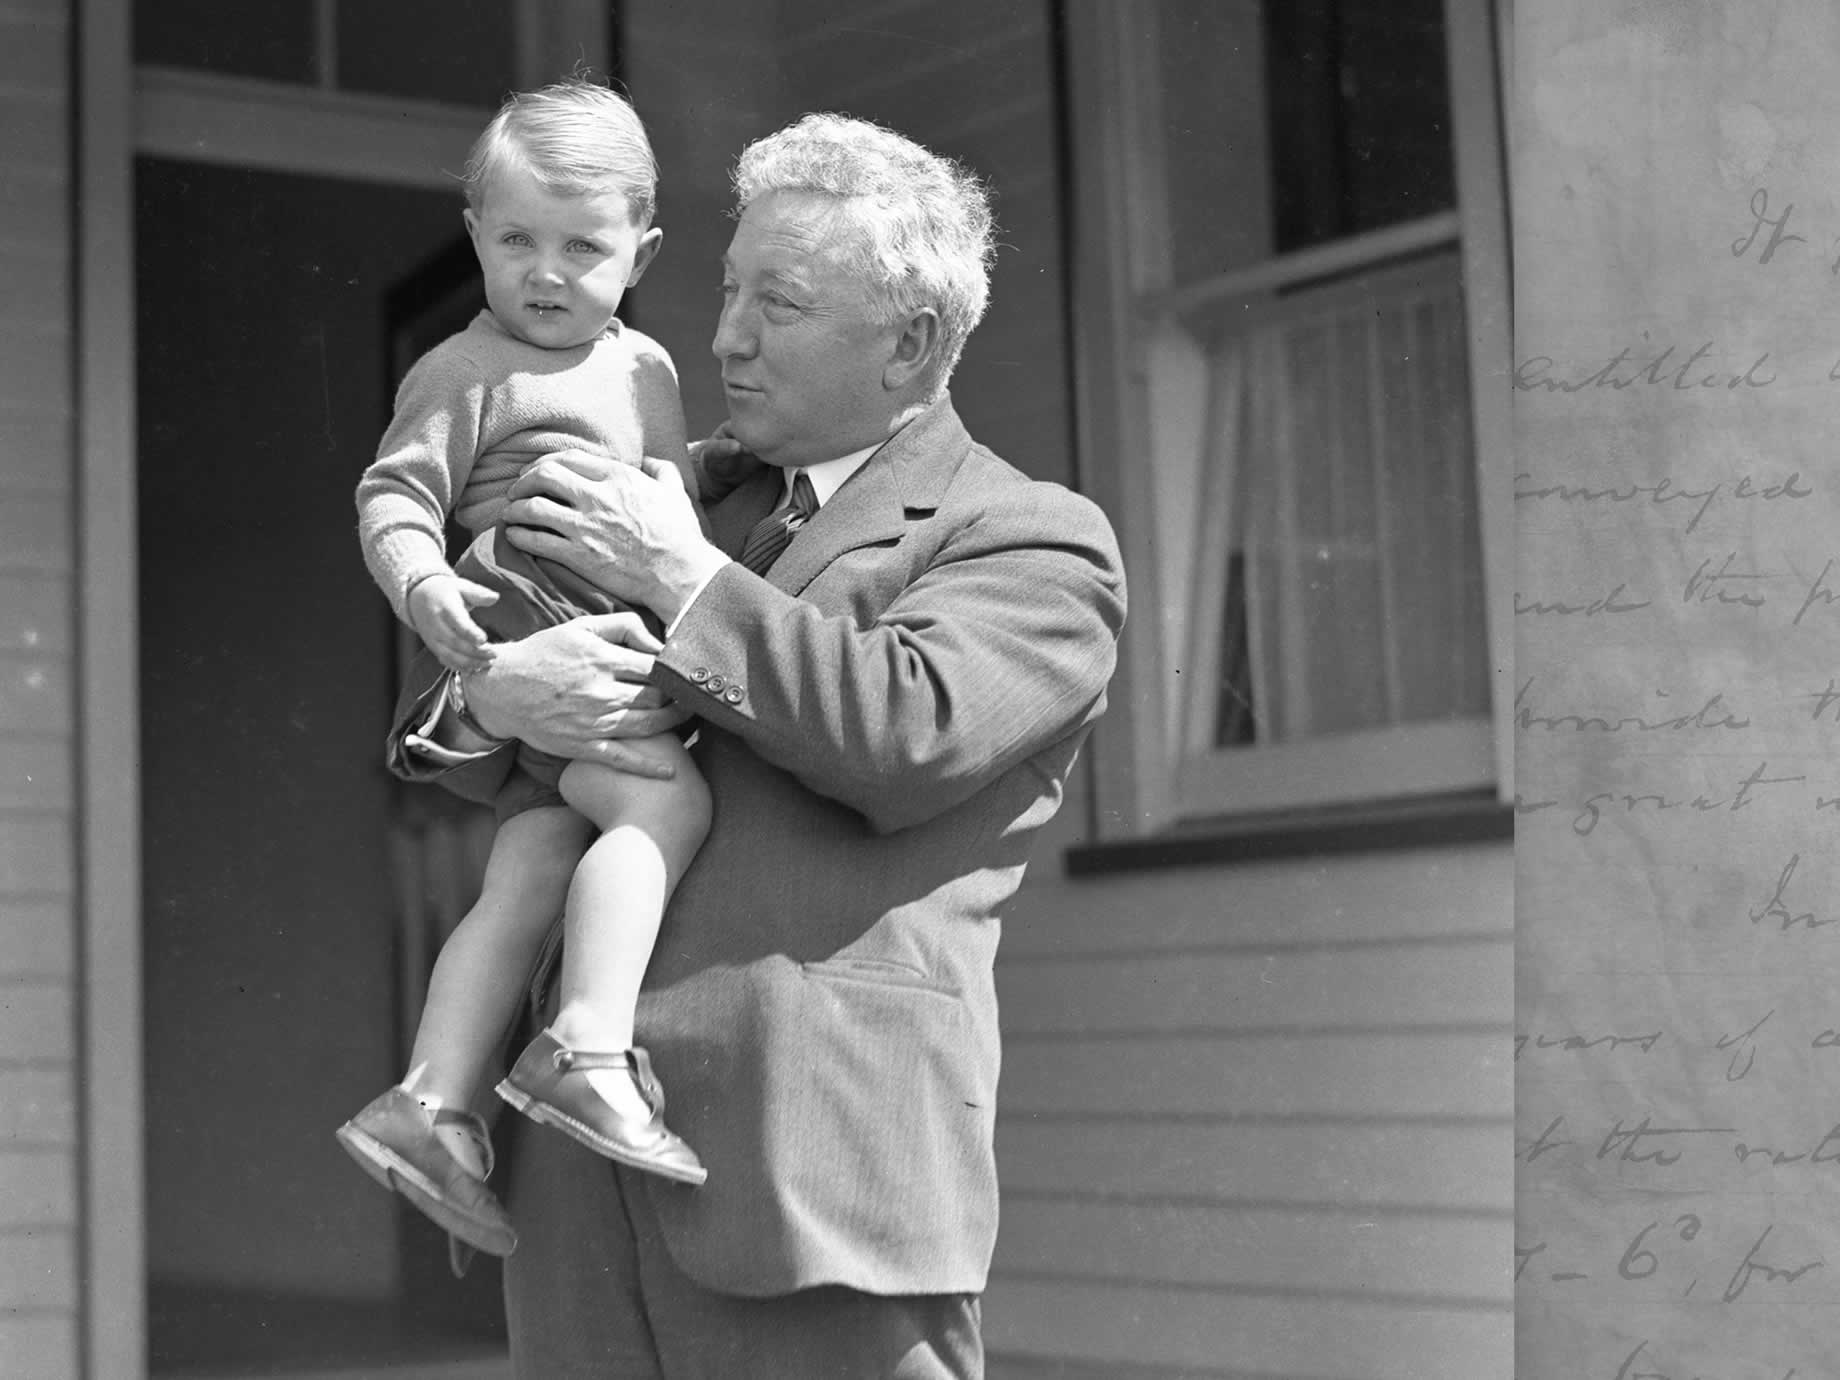 Joe Lyons outside the back door of his home with a young child in the mid 1920s